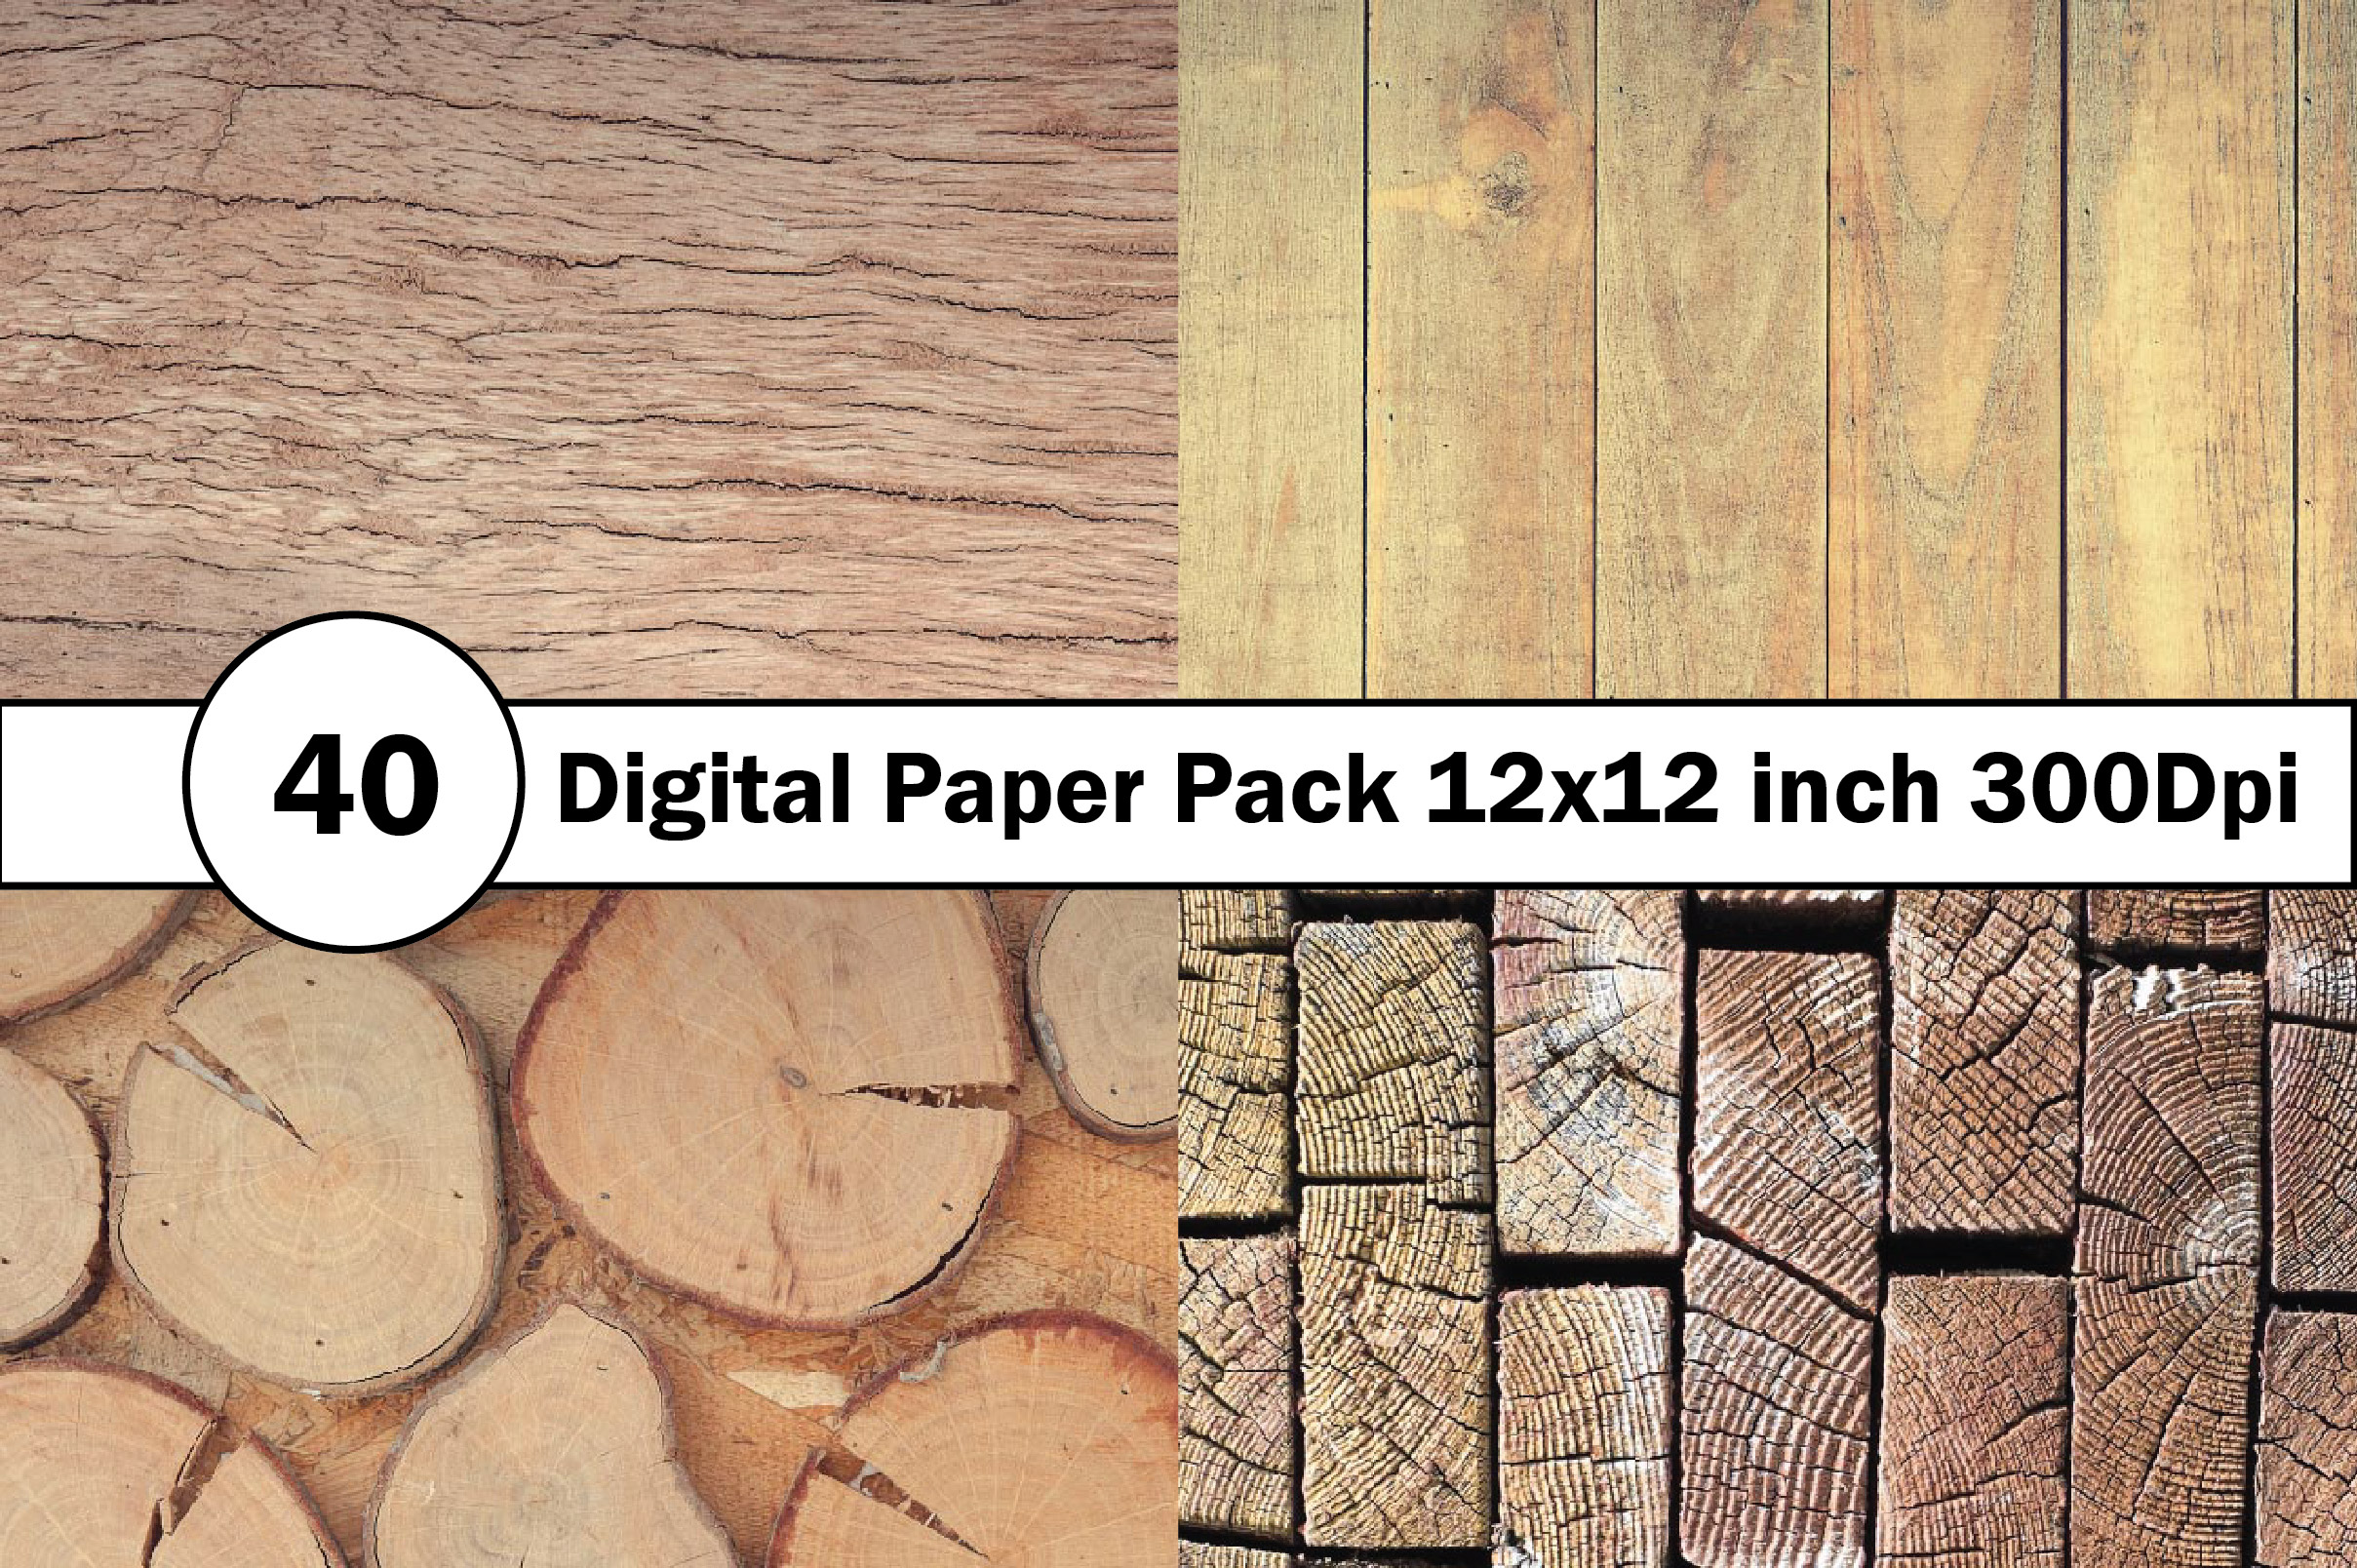 40 Digital Paper Pack 12x12 inch 300 Dpi example image 5